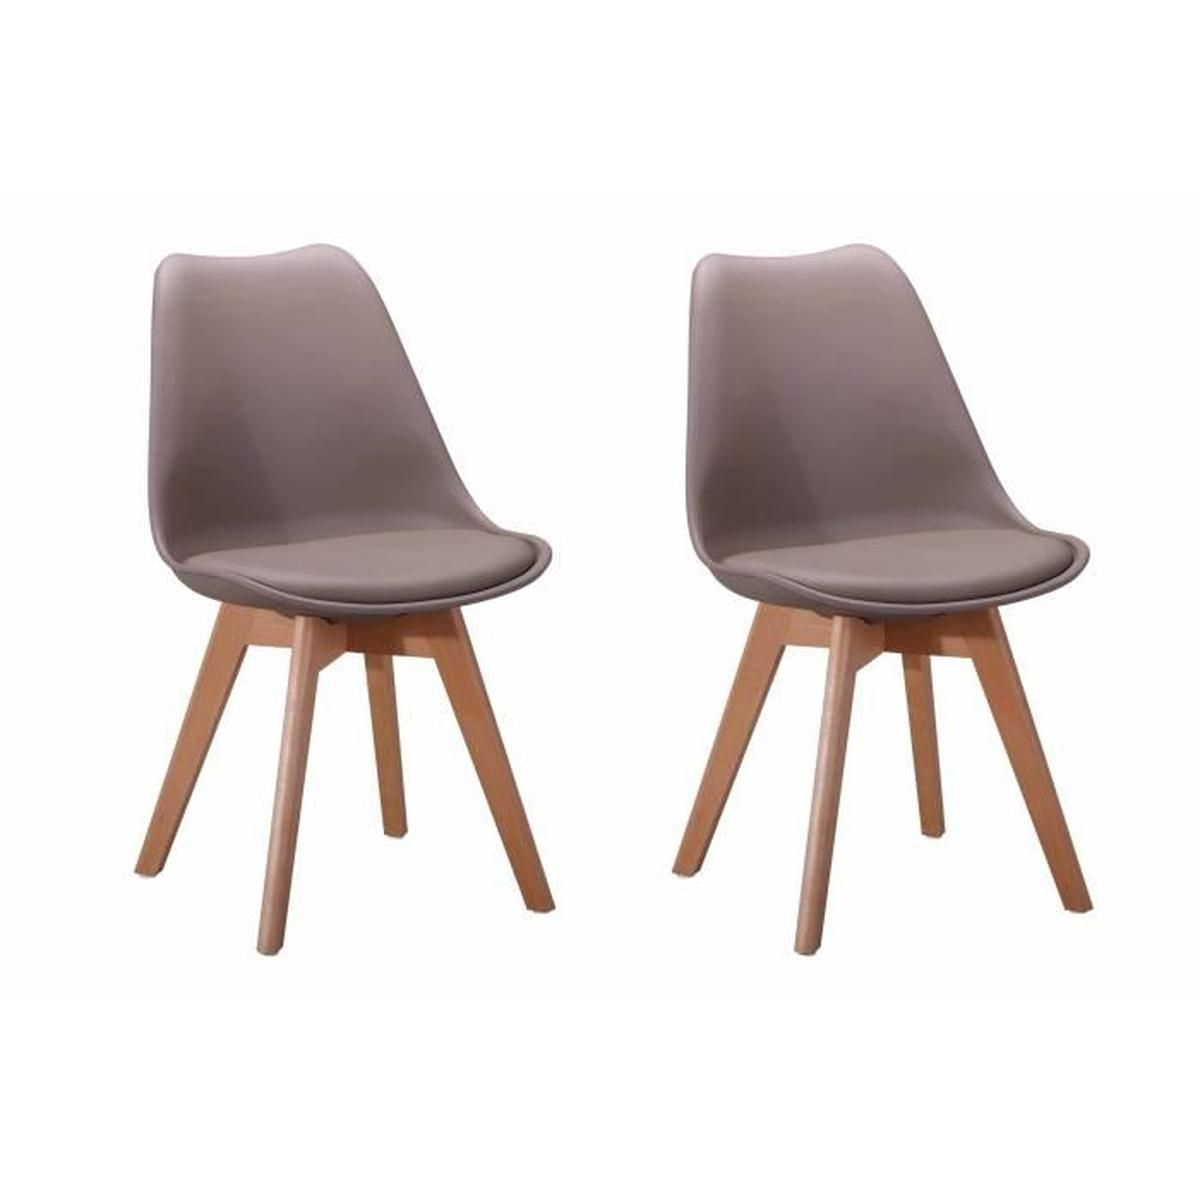 2 Chaises Andromeda, Couleur: Taupe - Achat / Vente Chaise encequiconcerne Code Couleur Taupe